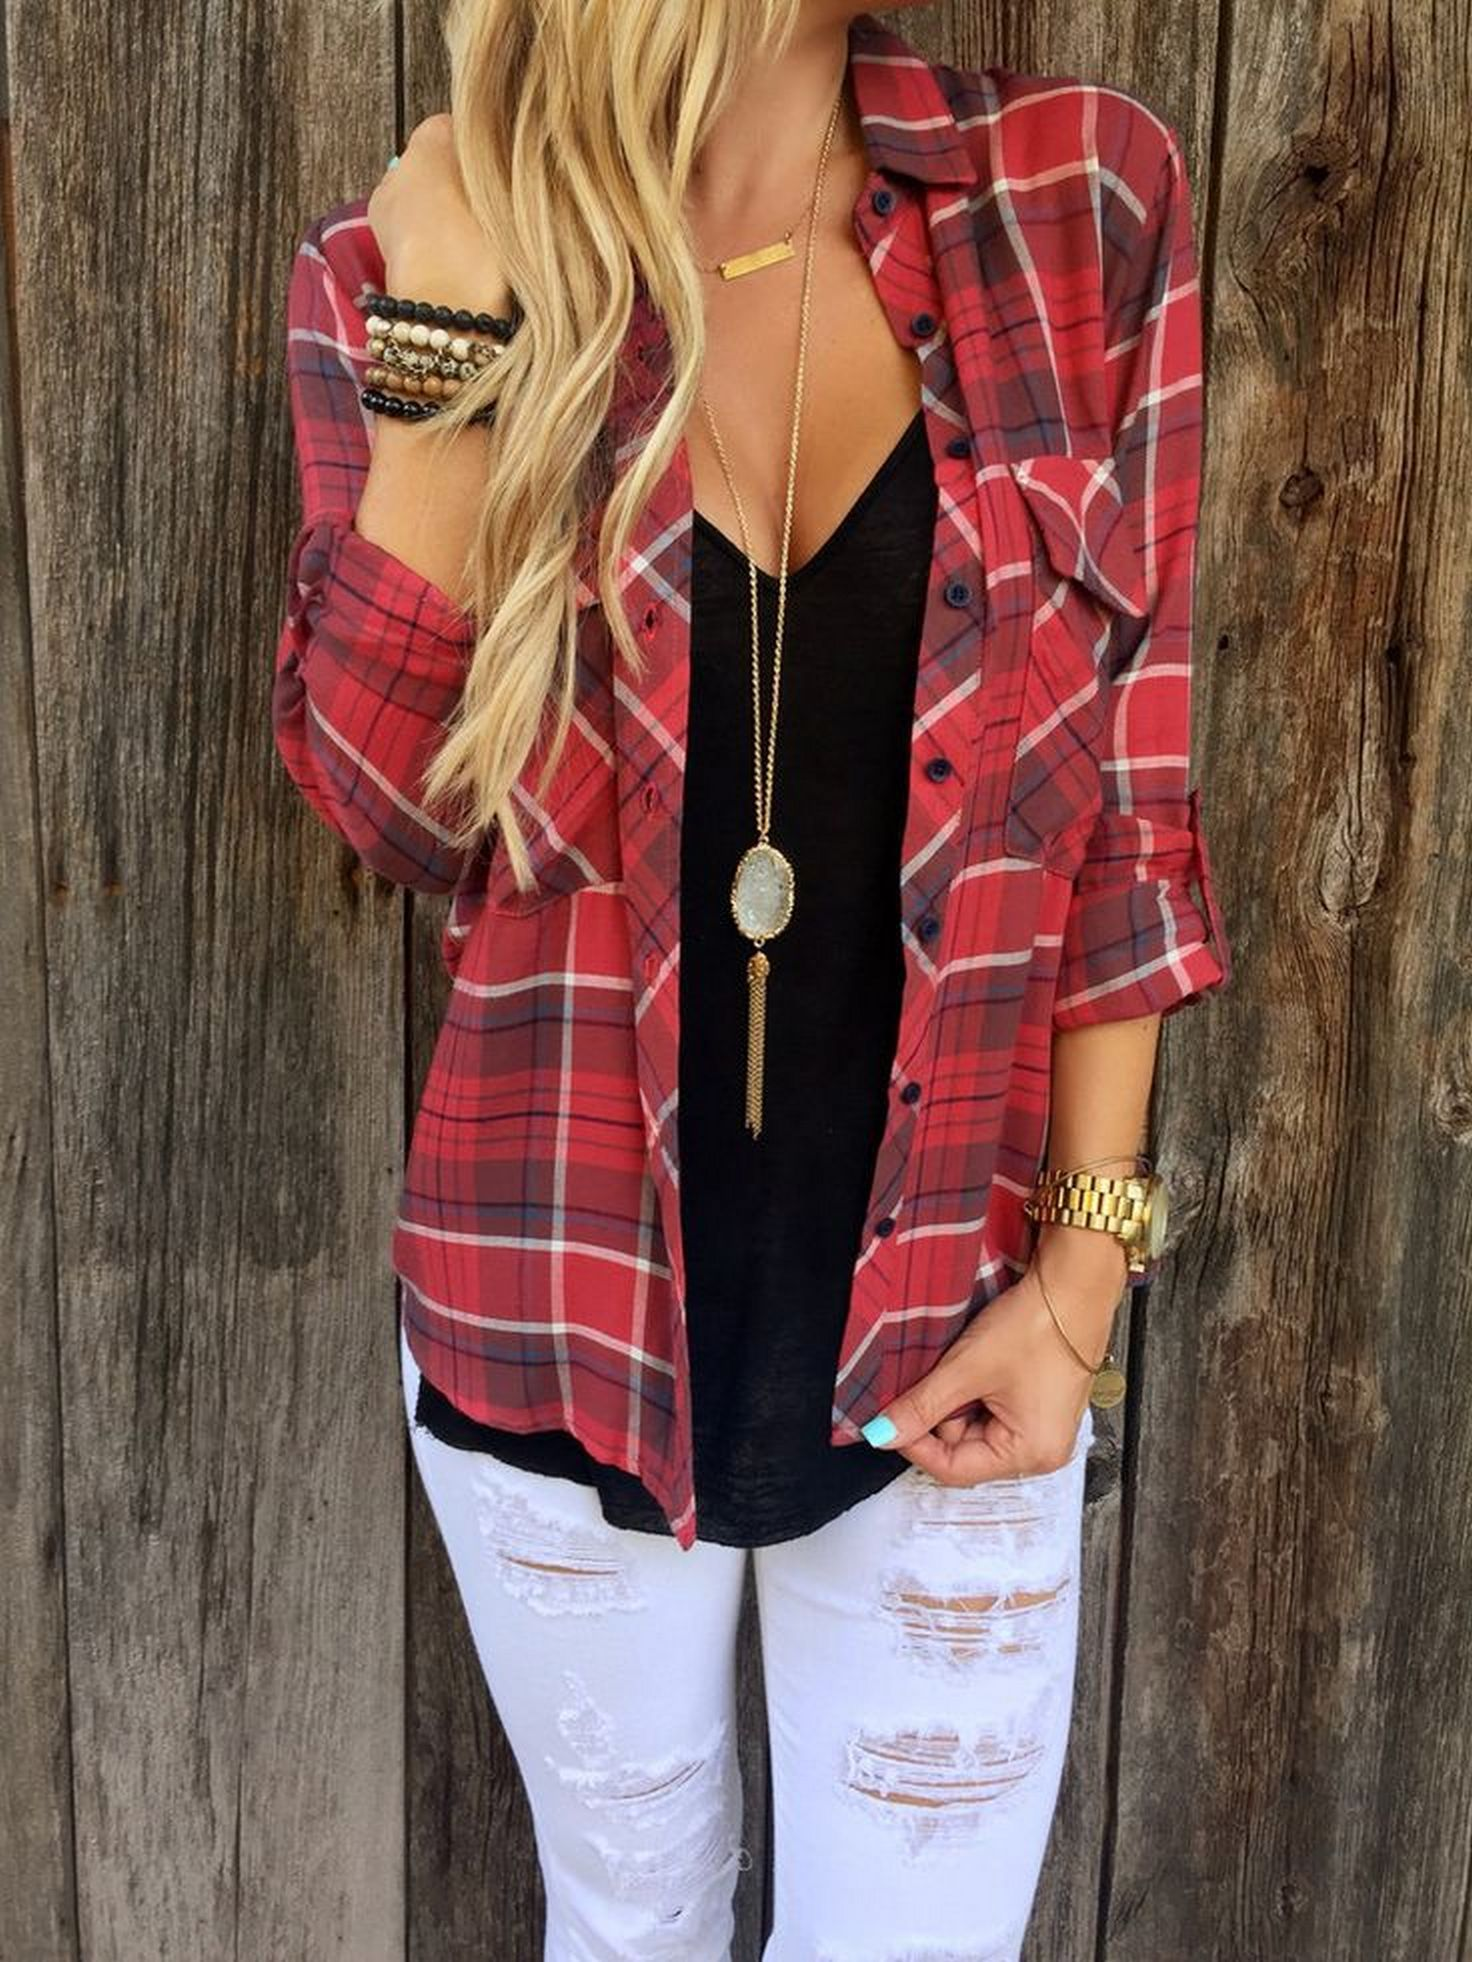 Flannel shirt outfits for women  Ways to Wear Flanel Outfit for Women fasbestwomen